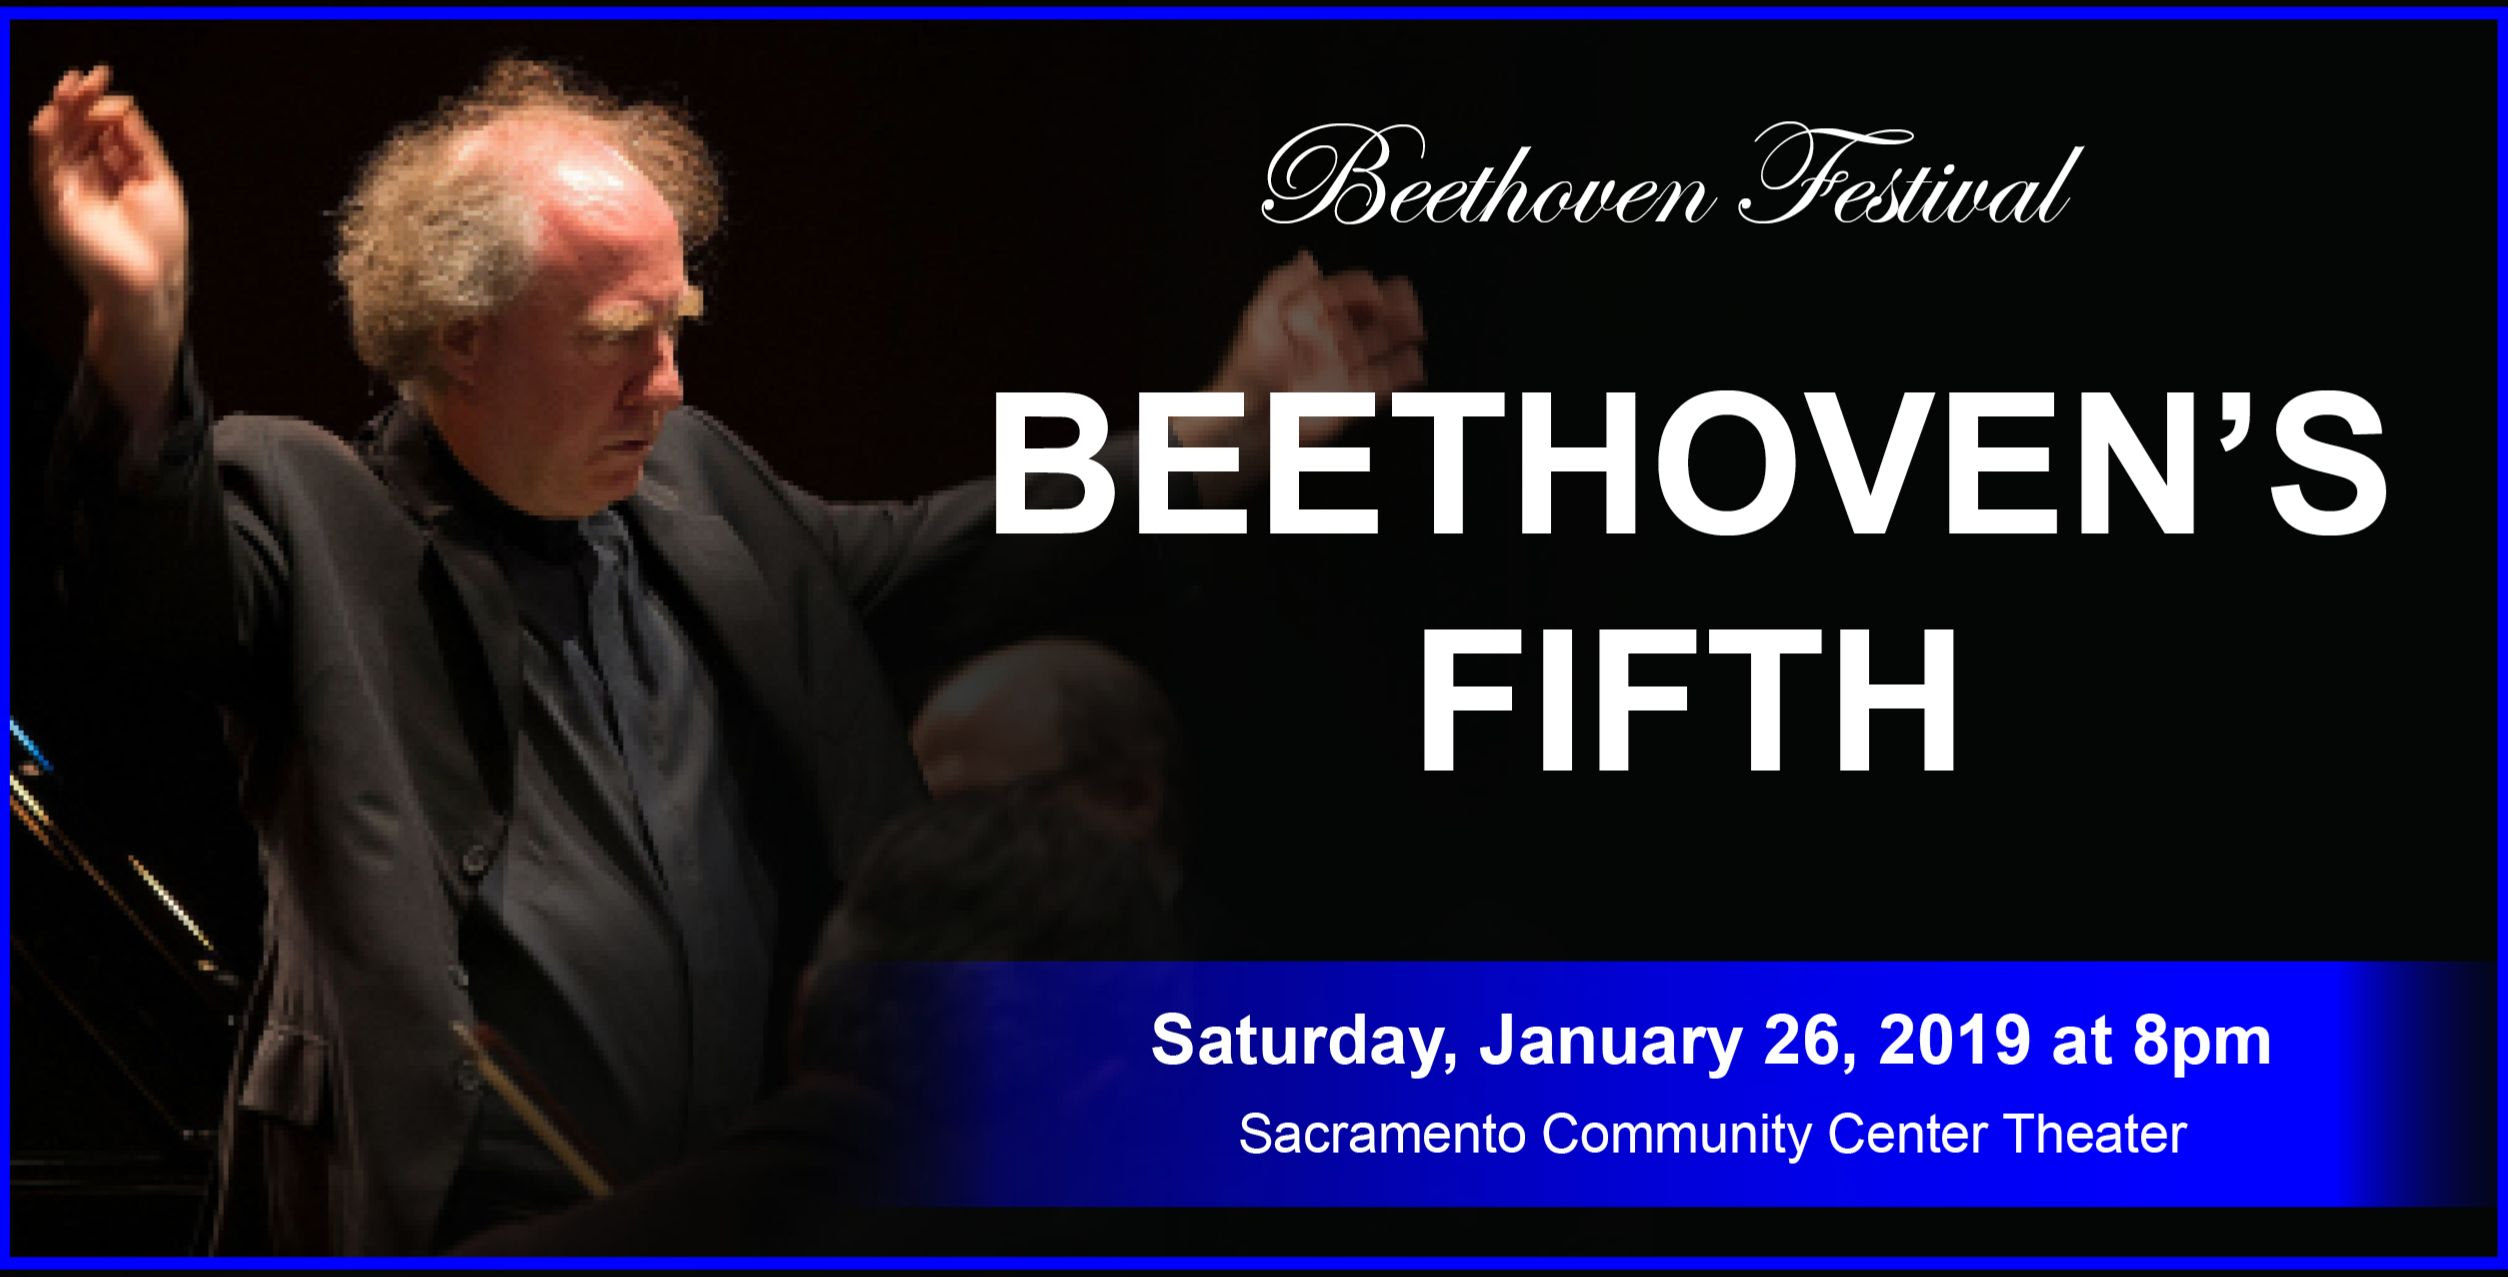 Beethoven Festival: Beethoven's Fifth